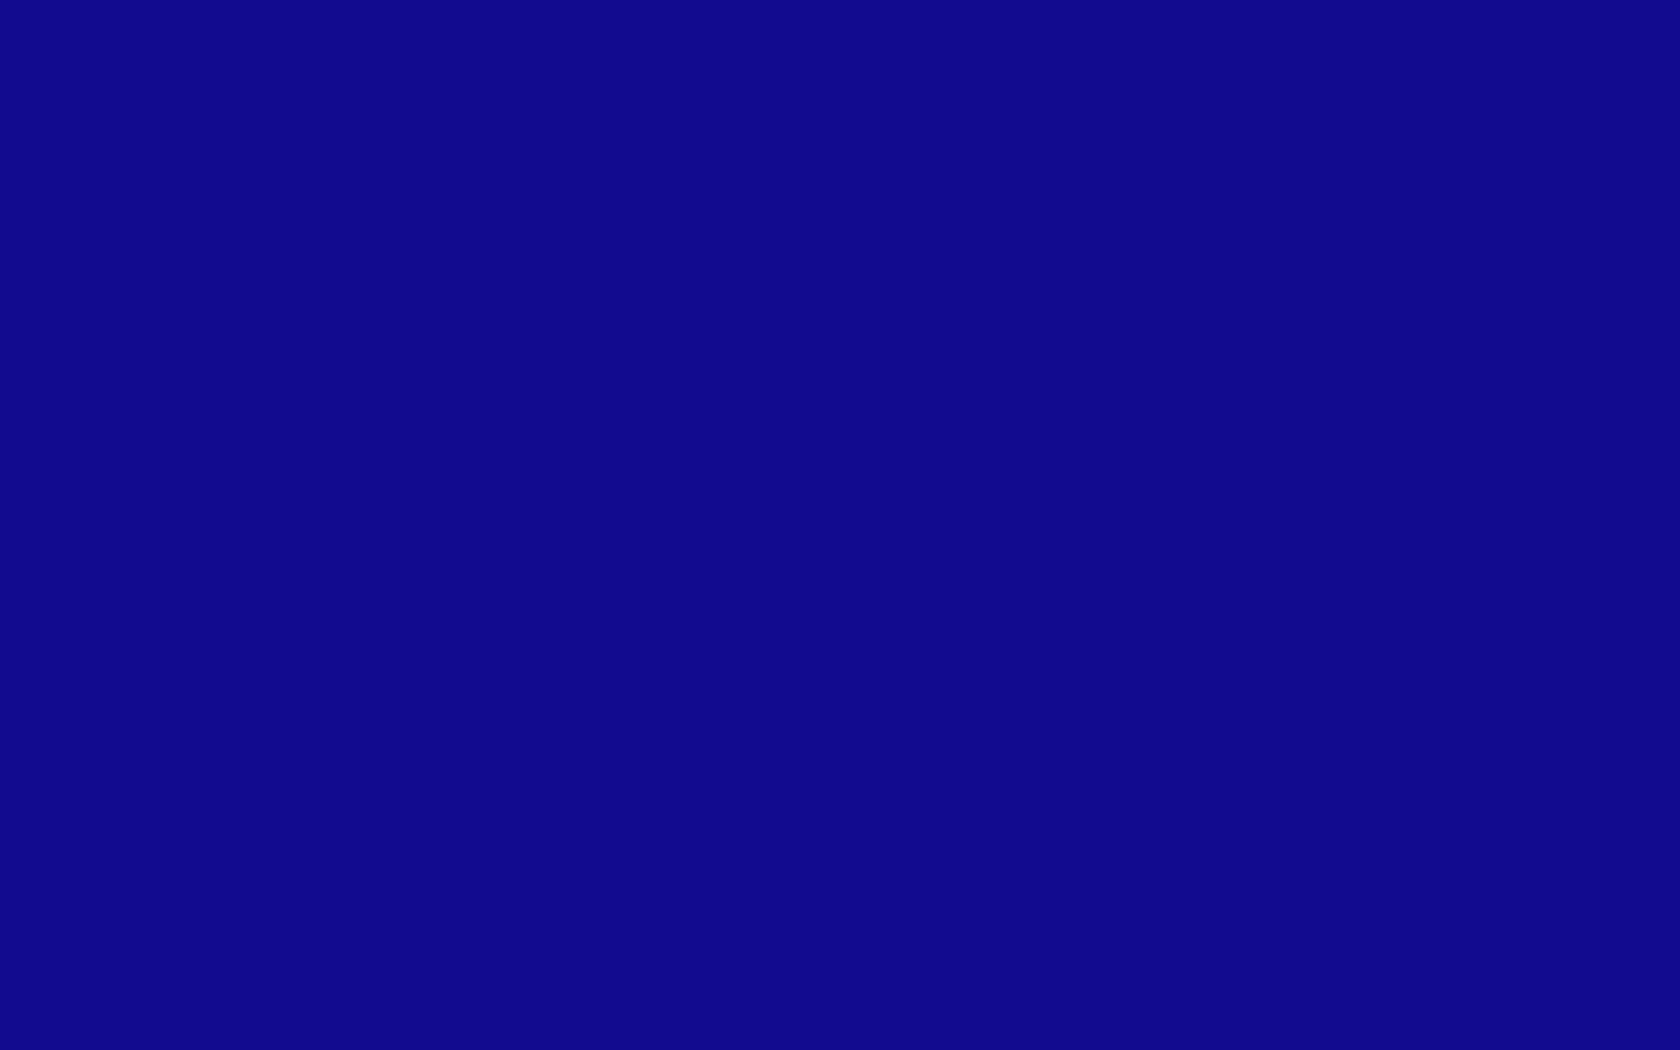 1680x1050 Ultramarine Solid Color Background 1680x1050